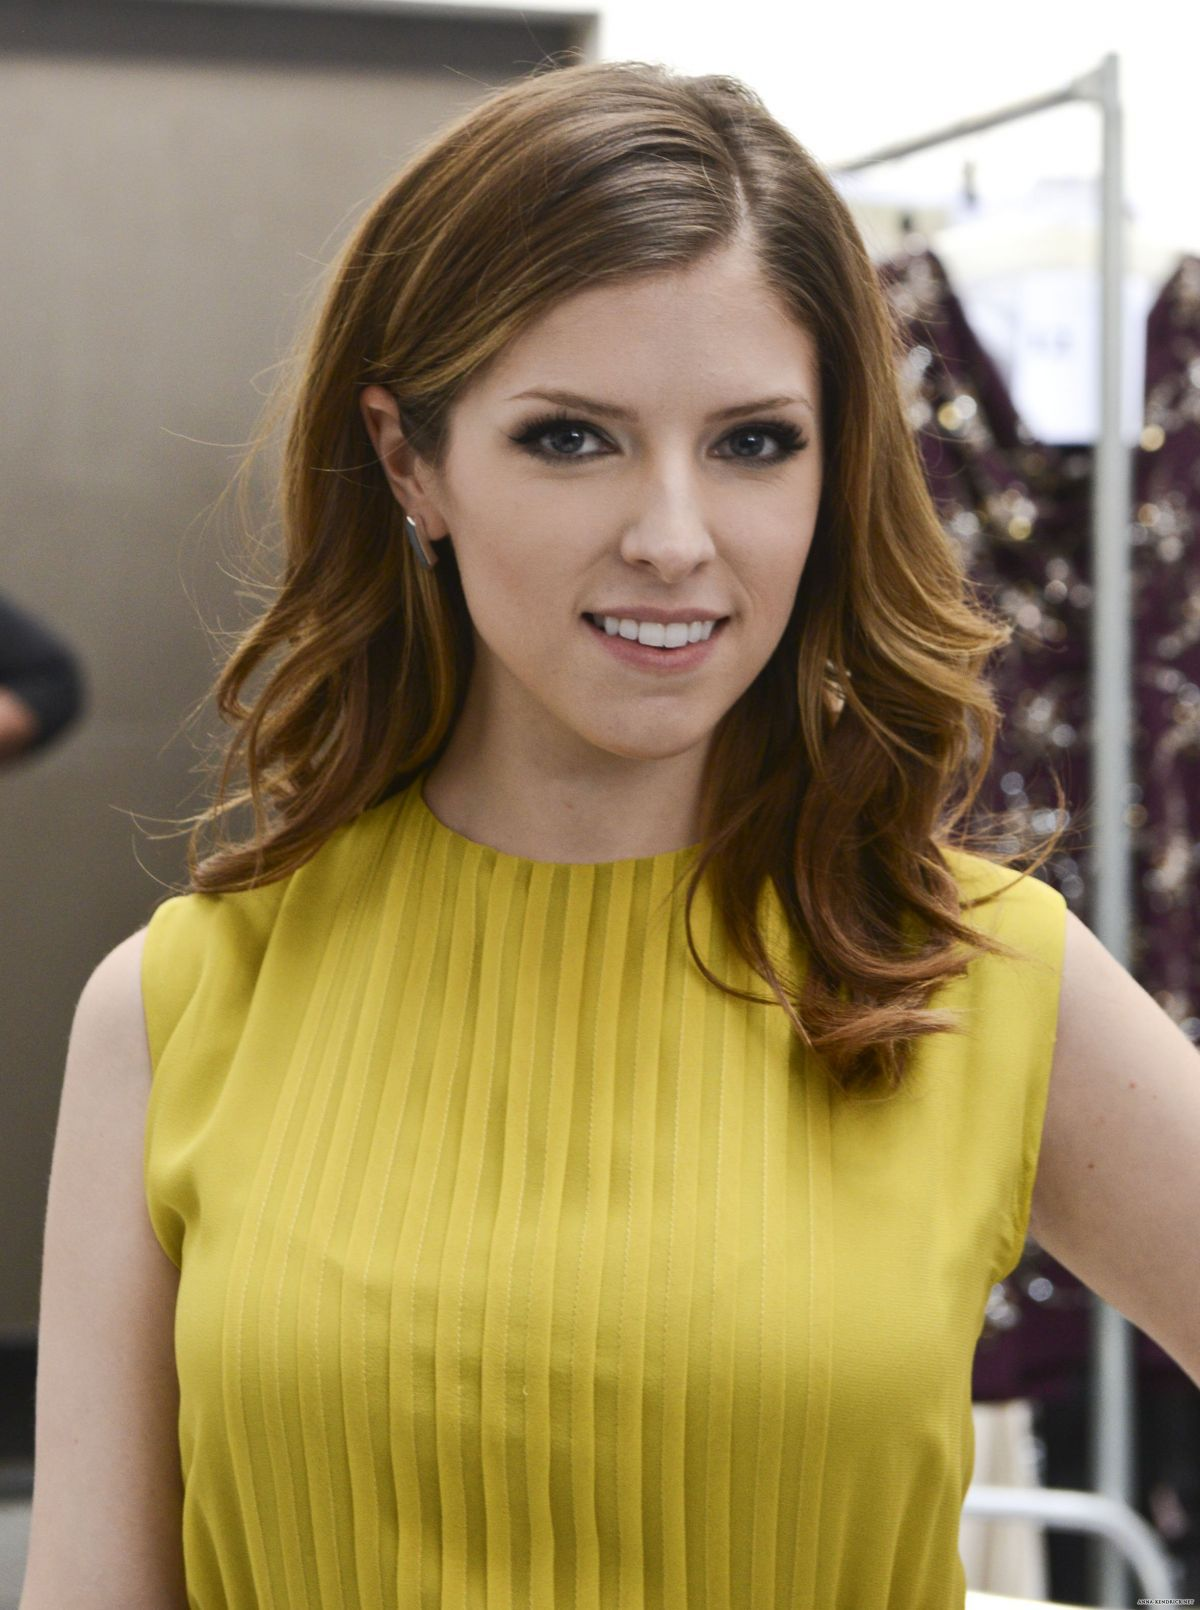 Anna Kendrick Iphone Background